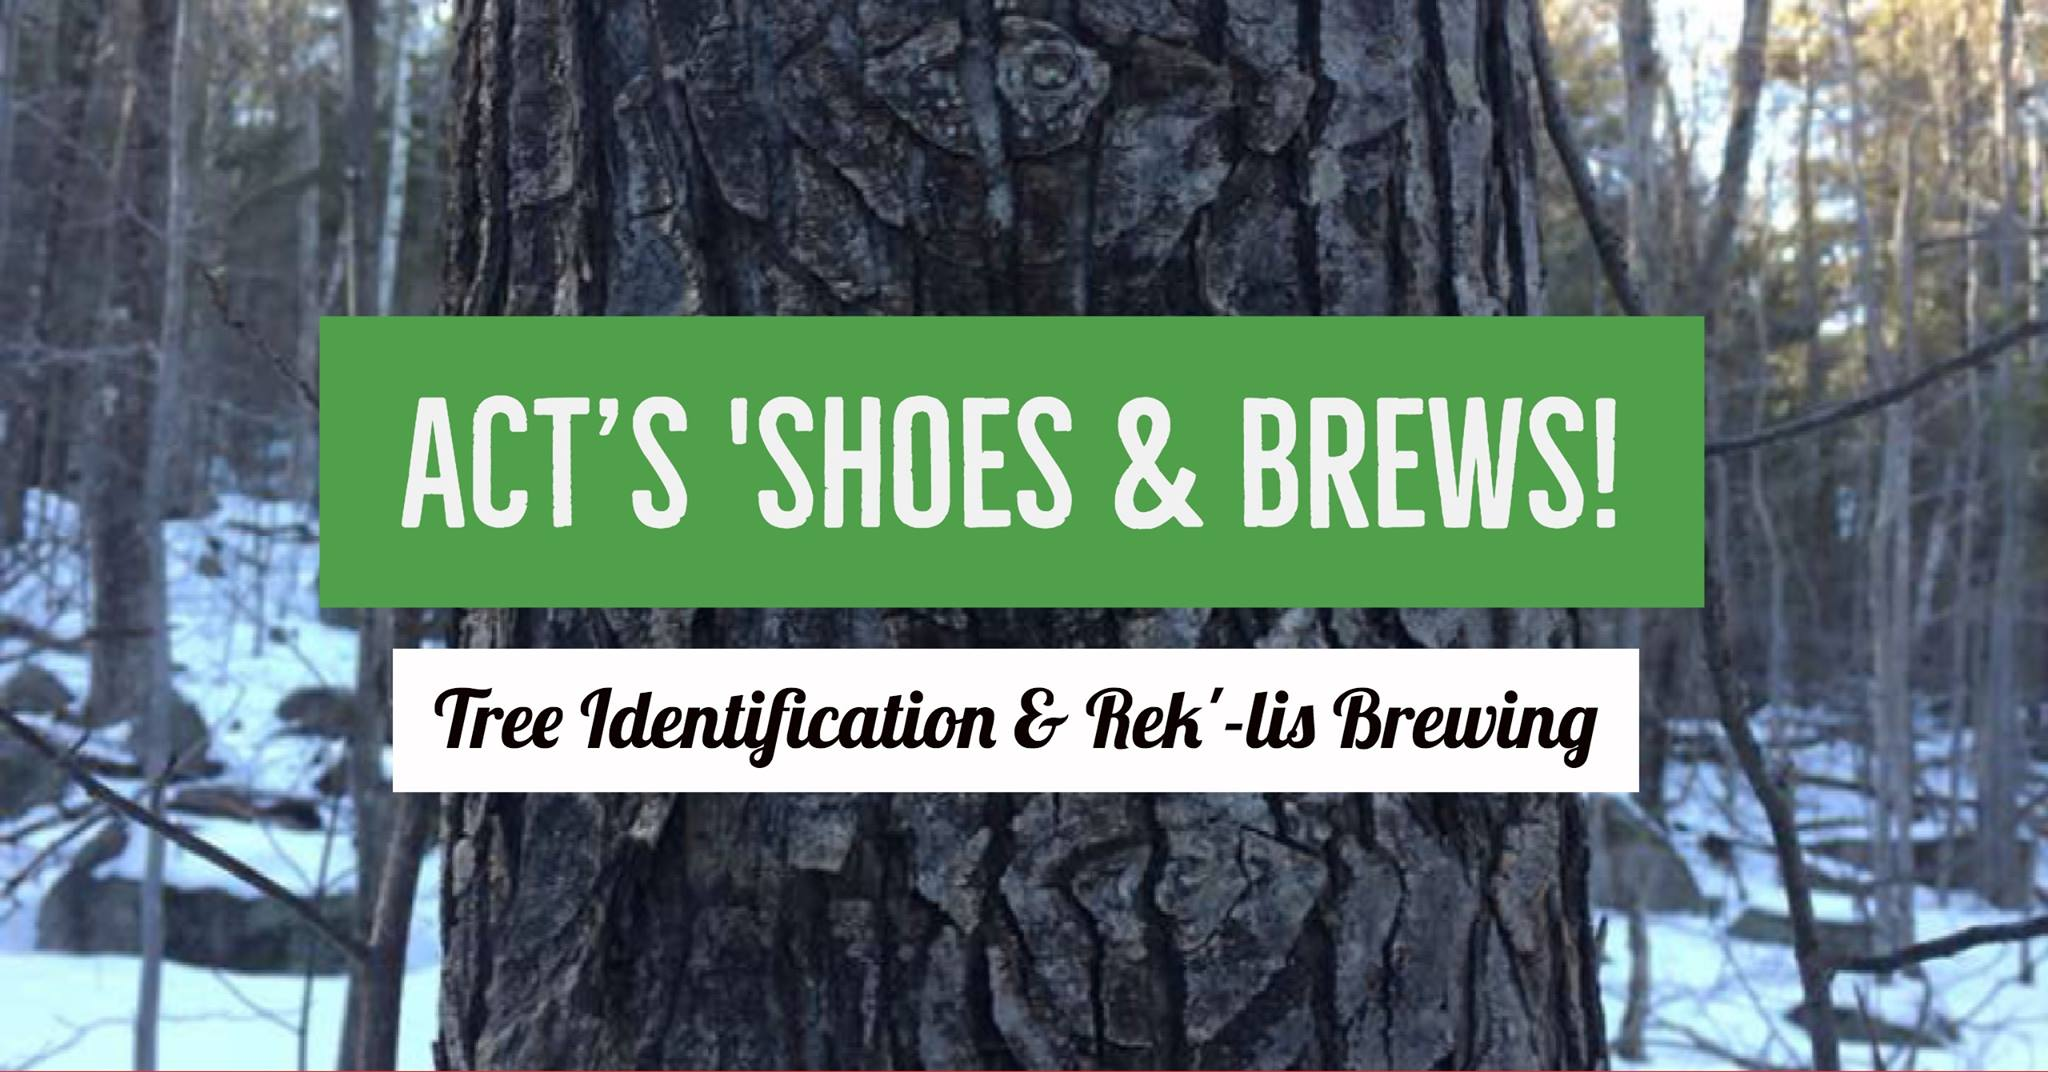 ACT Shoes & Brews.jpg